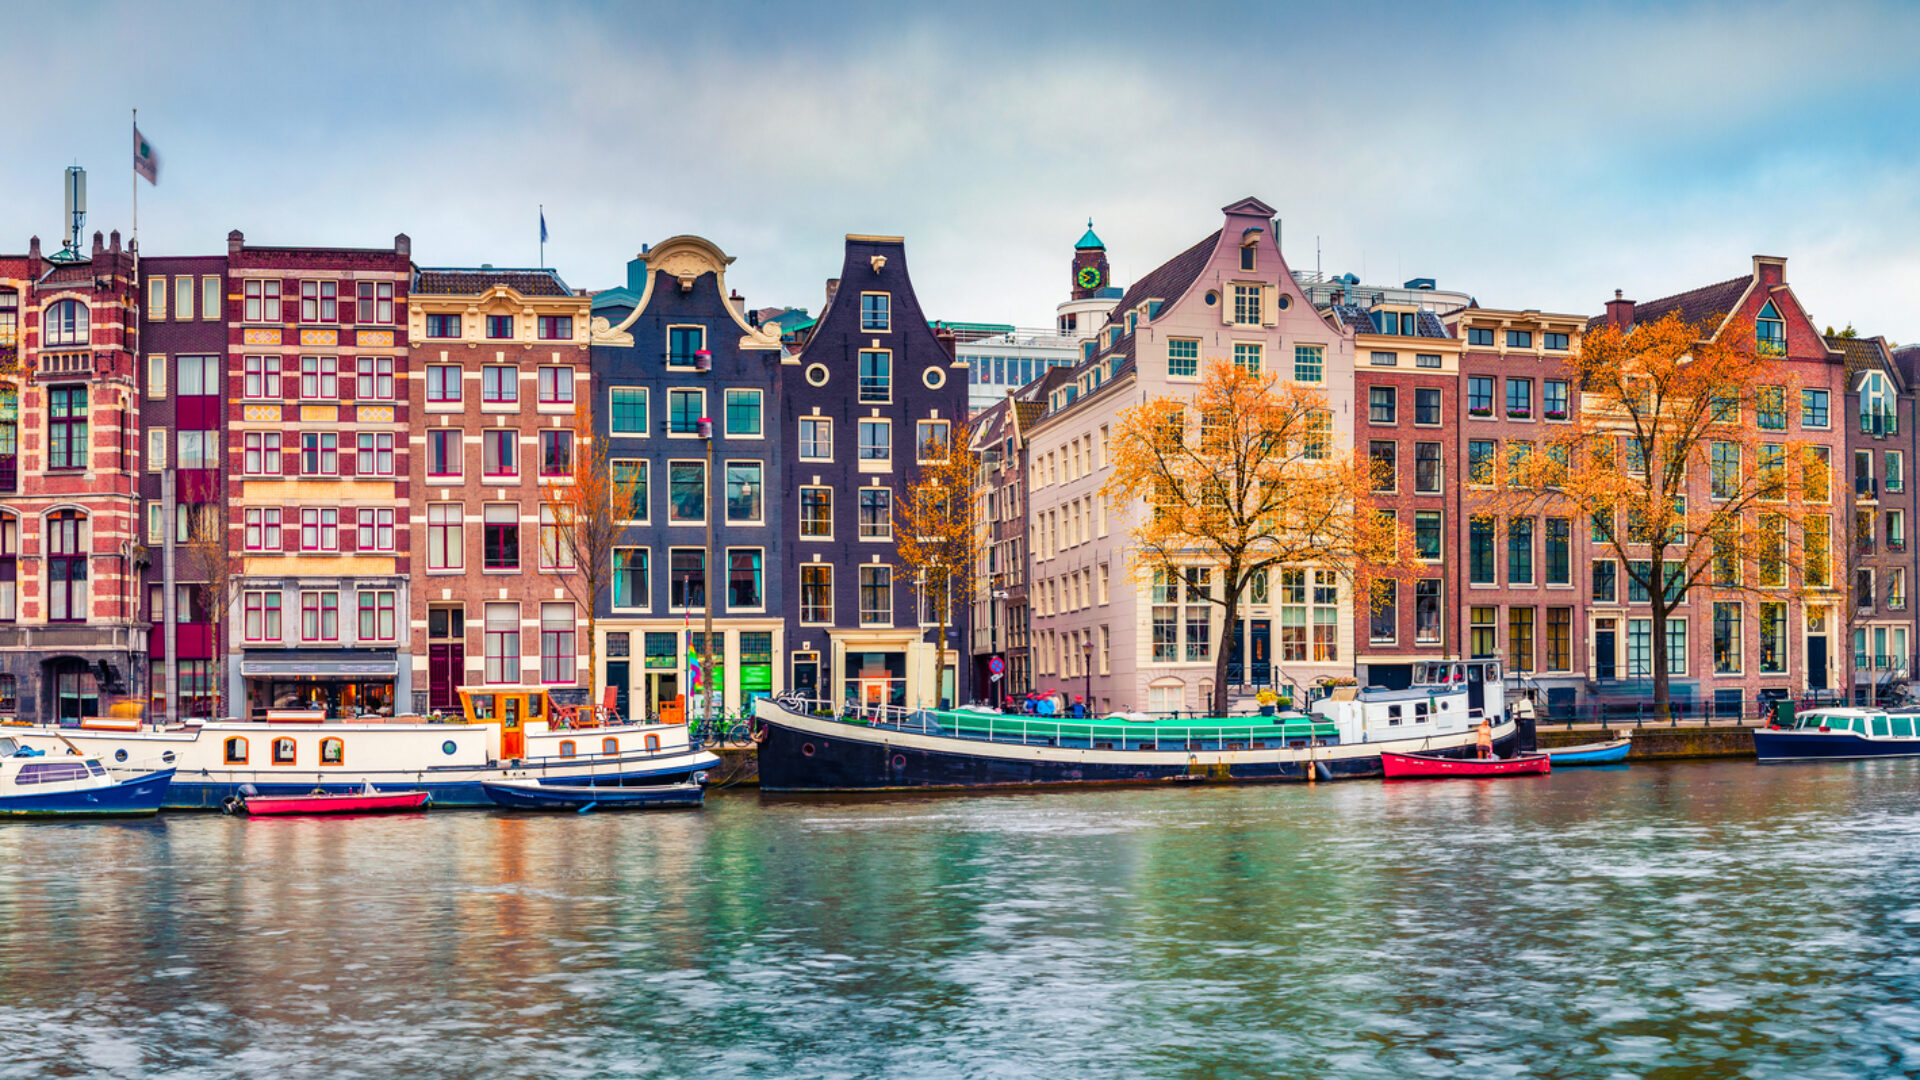 The most visited cities in Europe